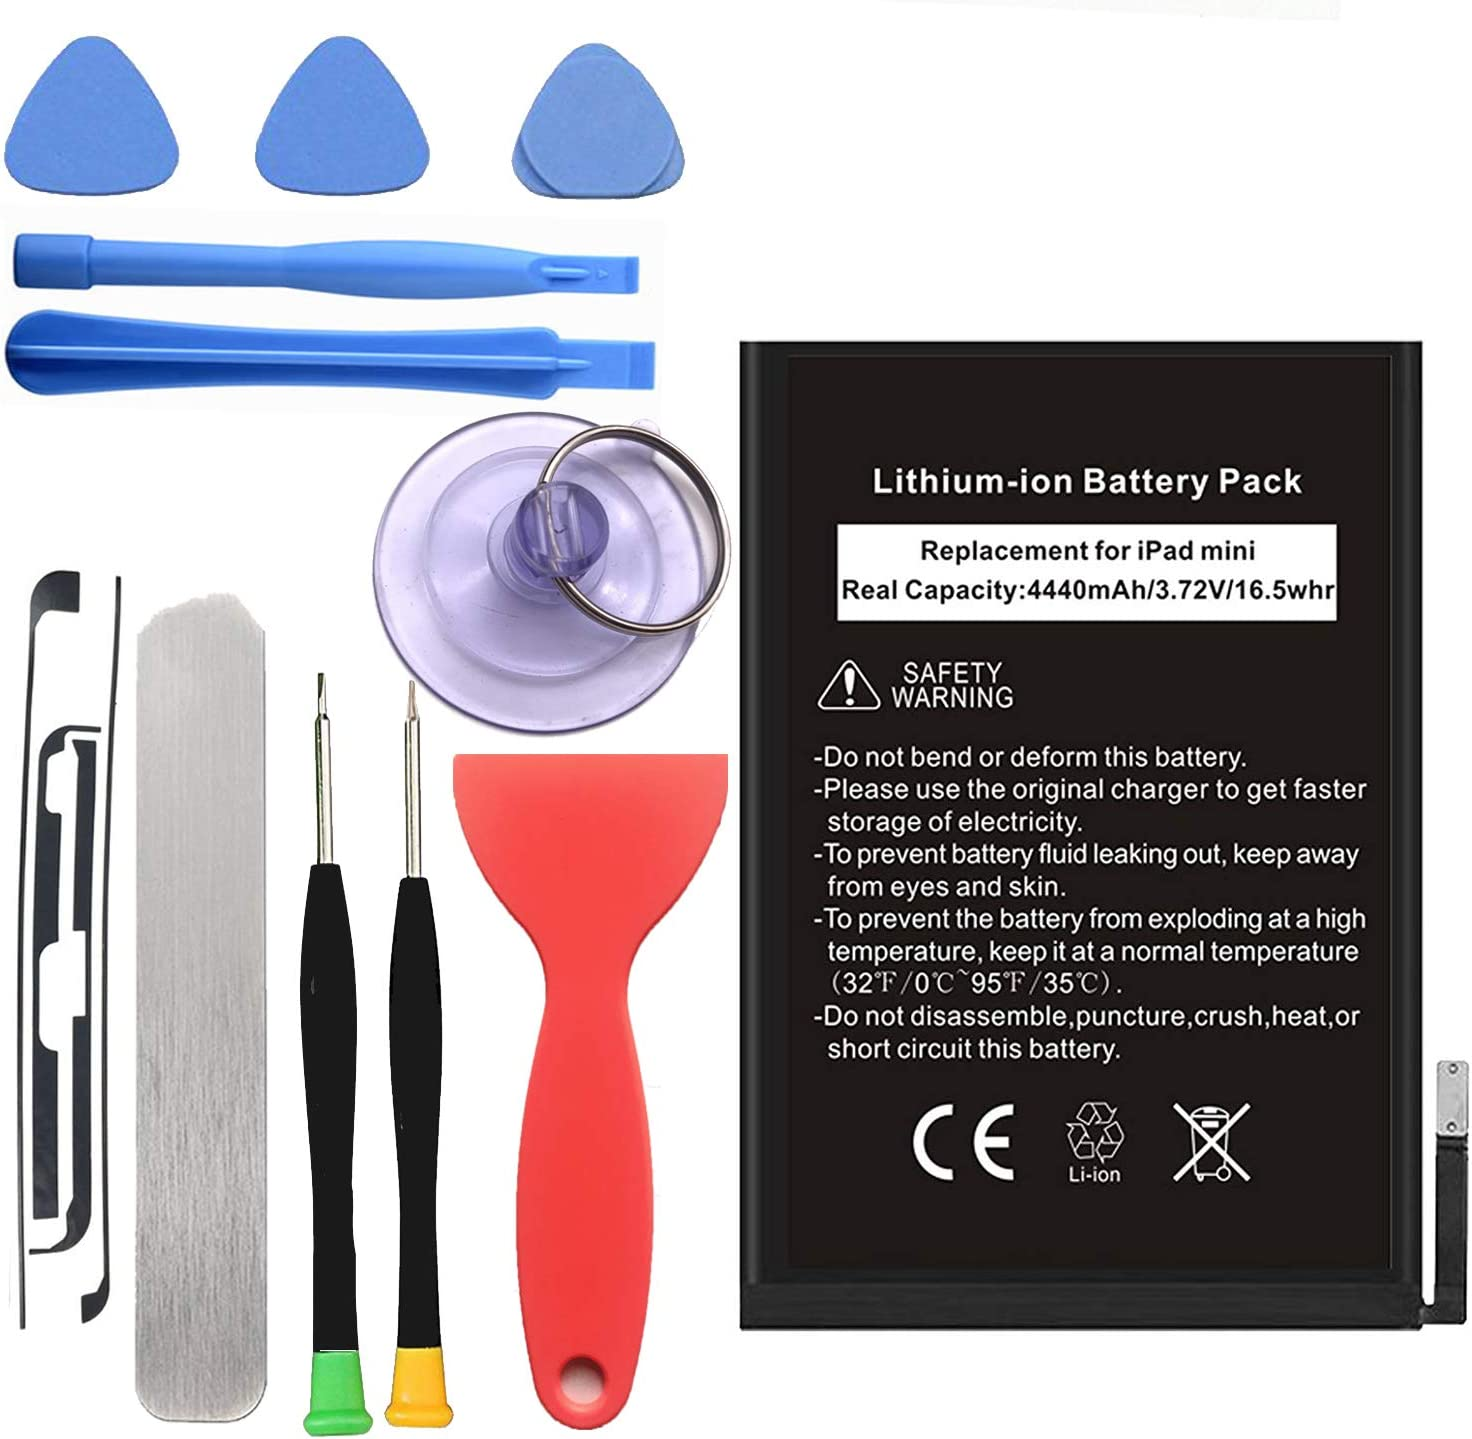 Ogodeal Replacement Internal Battery Kit for iPad Mini 1 (1st Generation iPad Mini) Fixes for Apple A1432, A1445, A1454, Apple iPad Mini, iPad Mini WiFi with Full Set Installation Tools and Adhesive